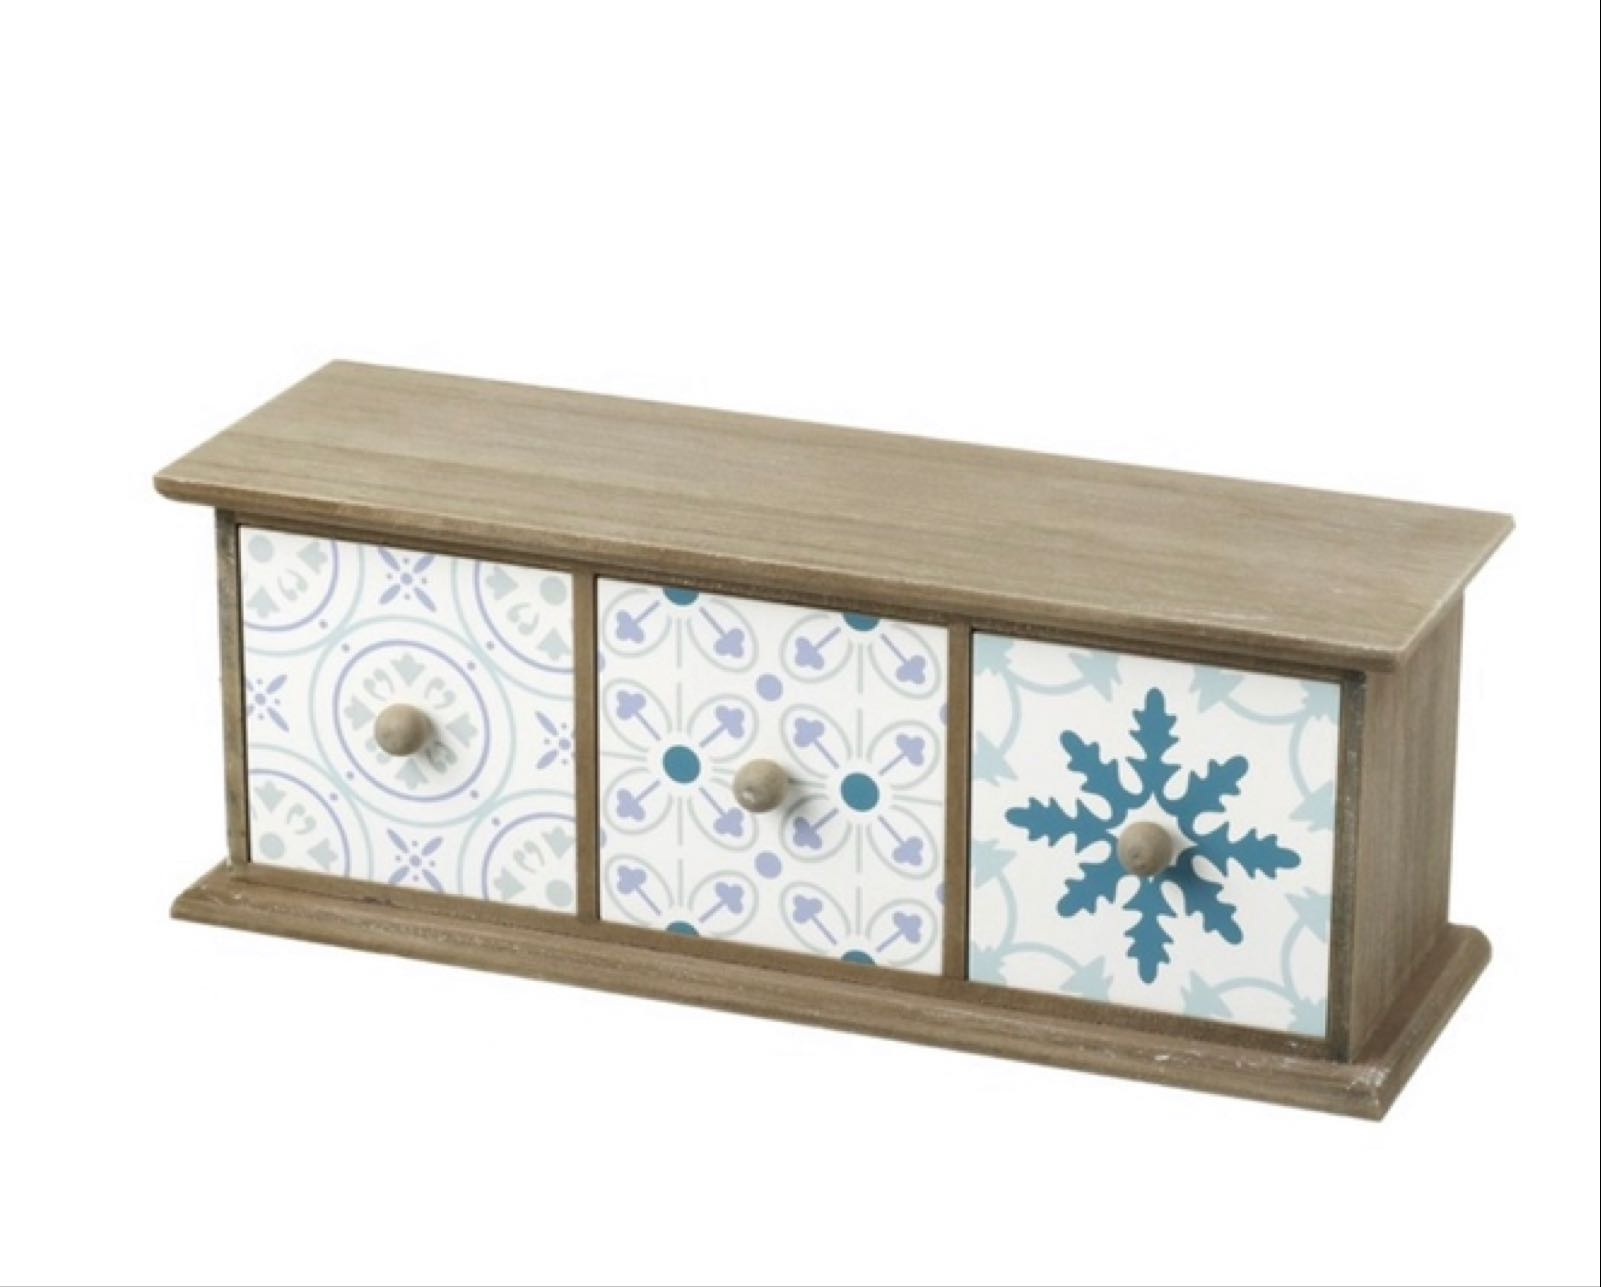 Patterned wooden 3 drawers